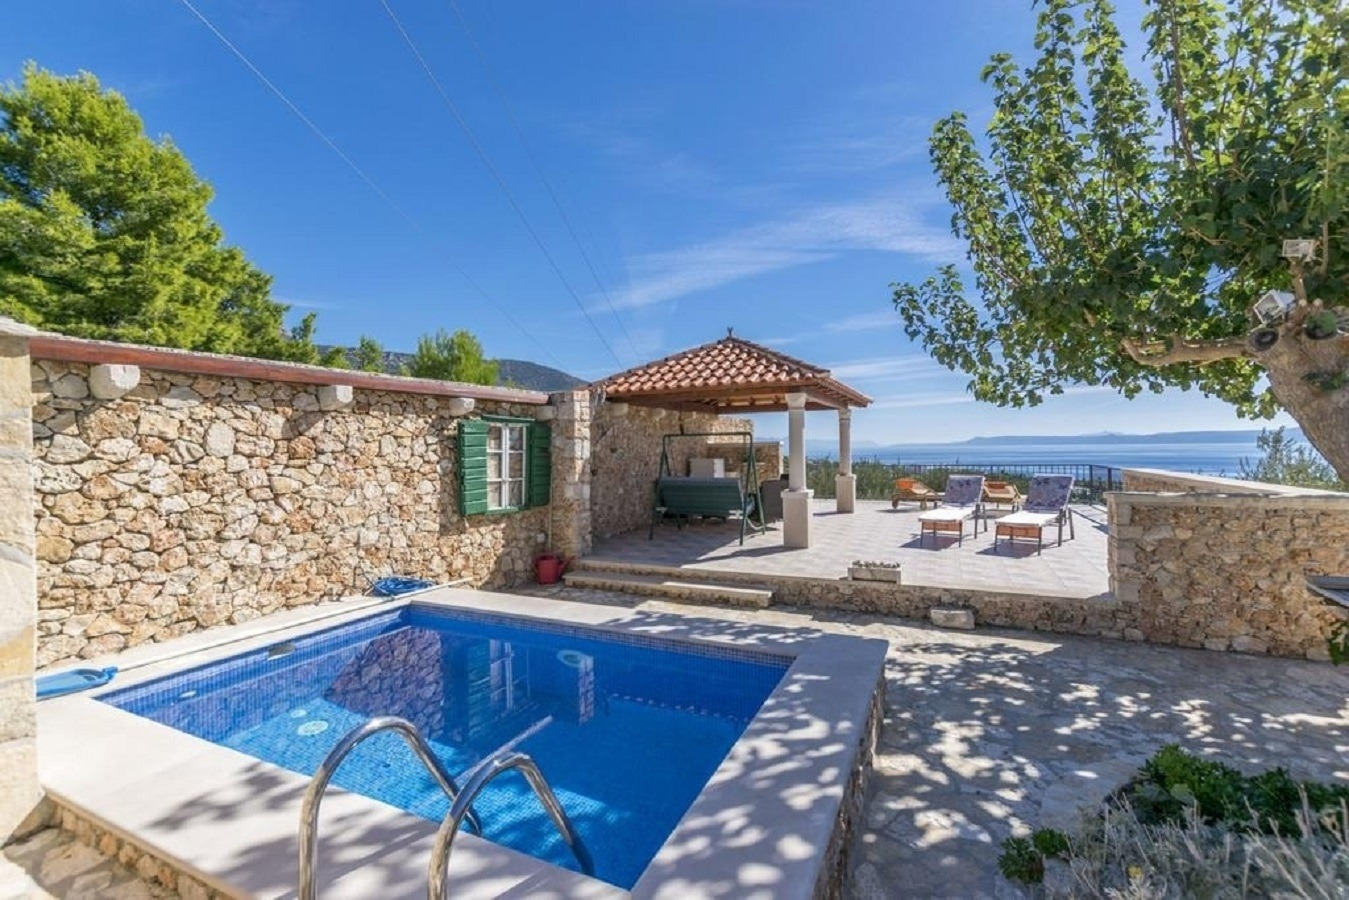 Holiday Homes, Bol, Island of Brač - Holiday houses, villas  Mate - with pool: